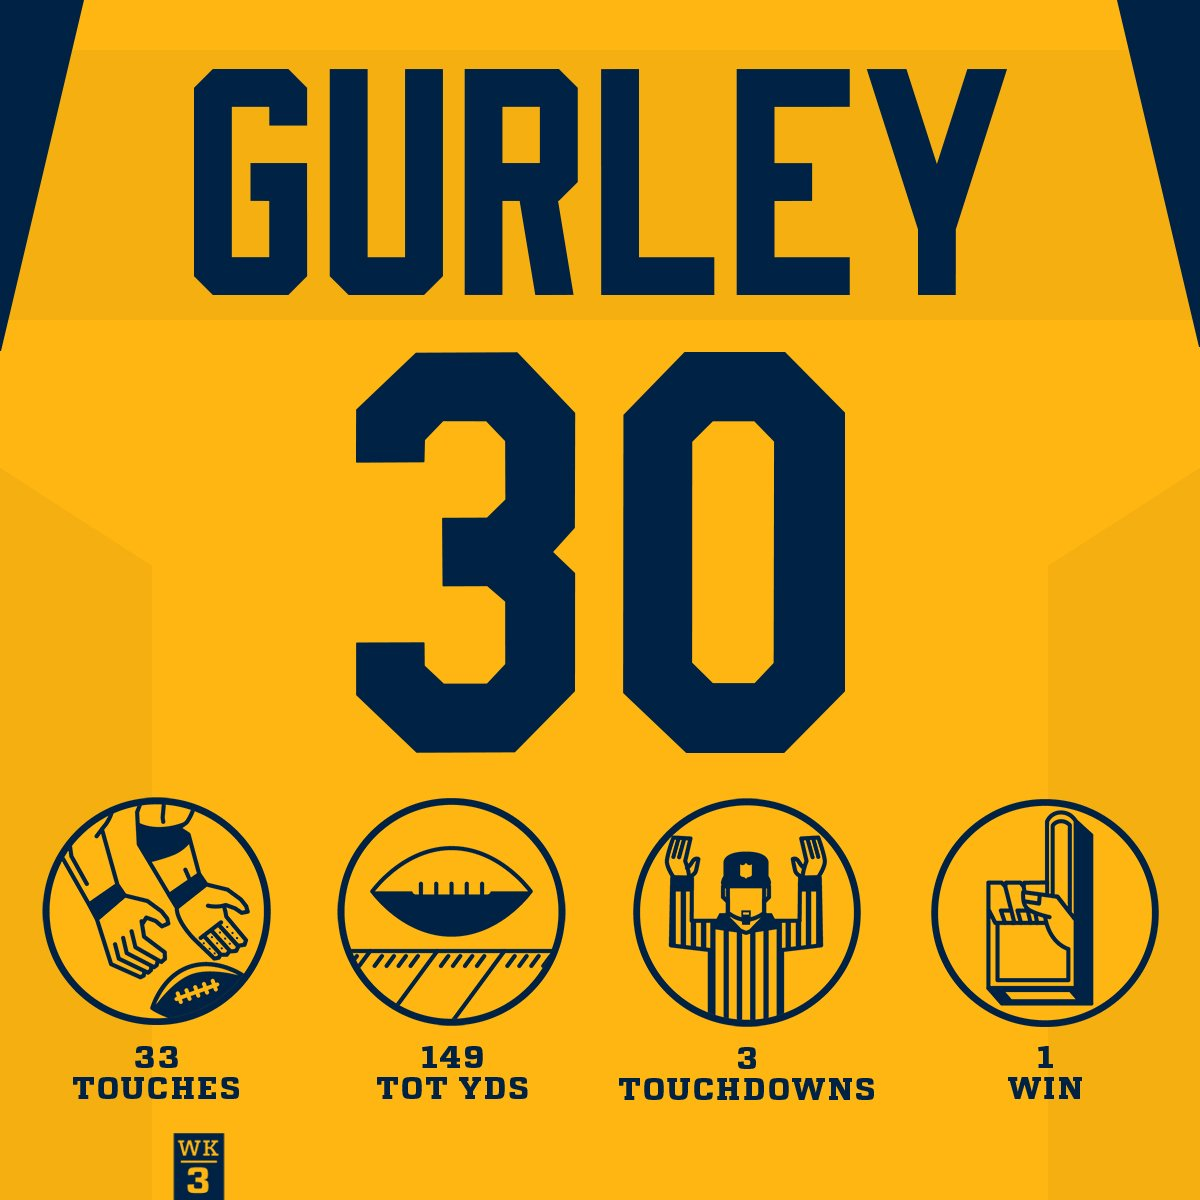 Have a day, @TG3II! #LARams #TNF https://t.co/pbV8BUStQg